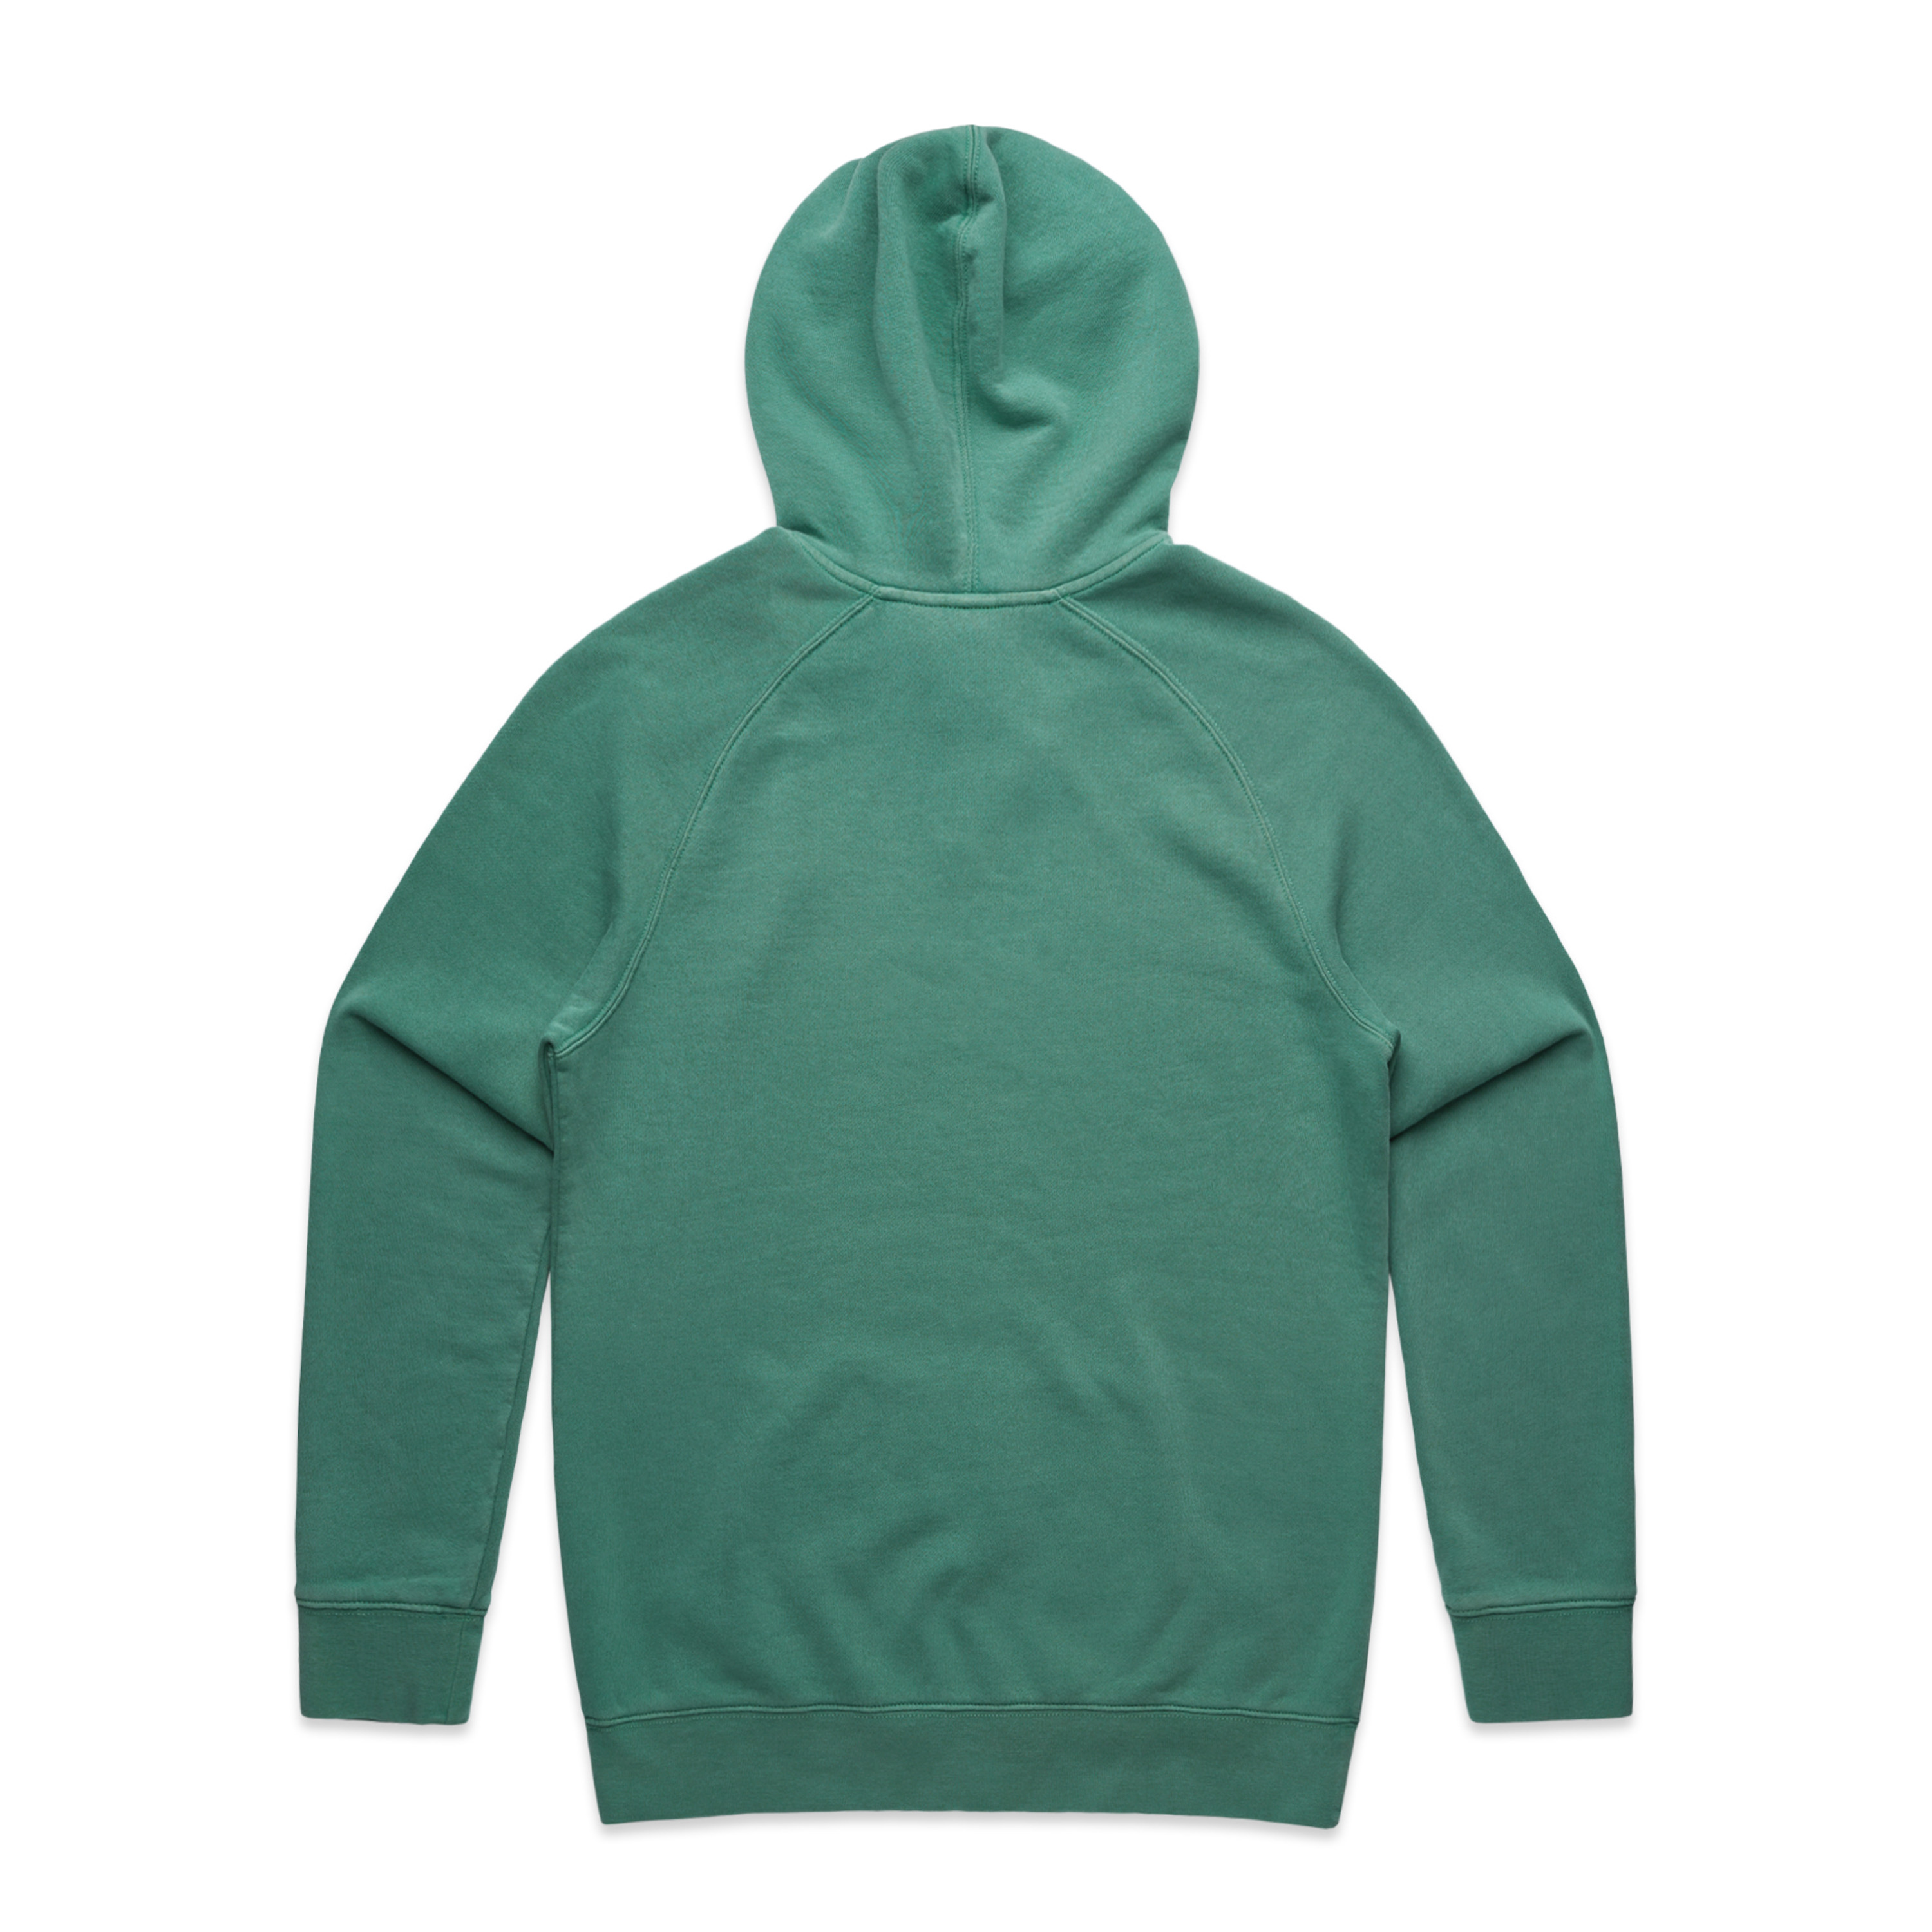 FADED TEAL - BACK